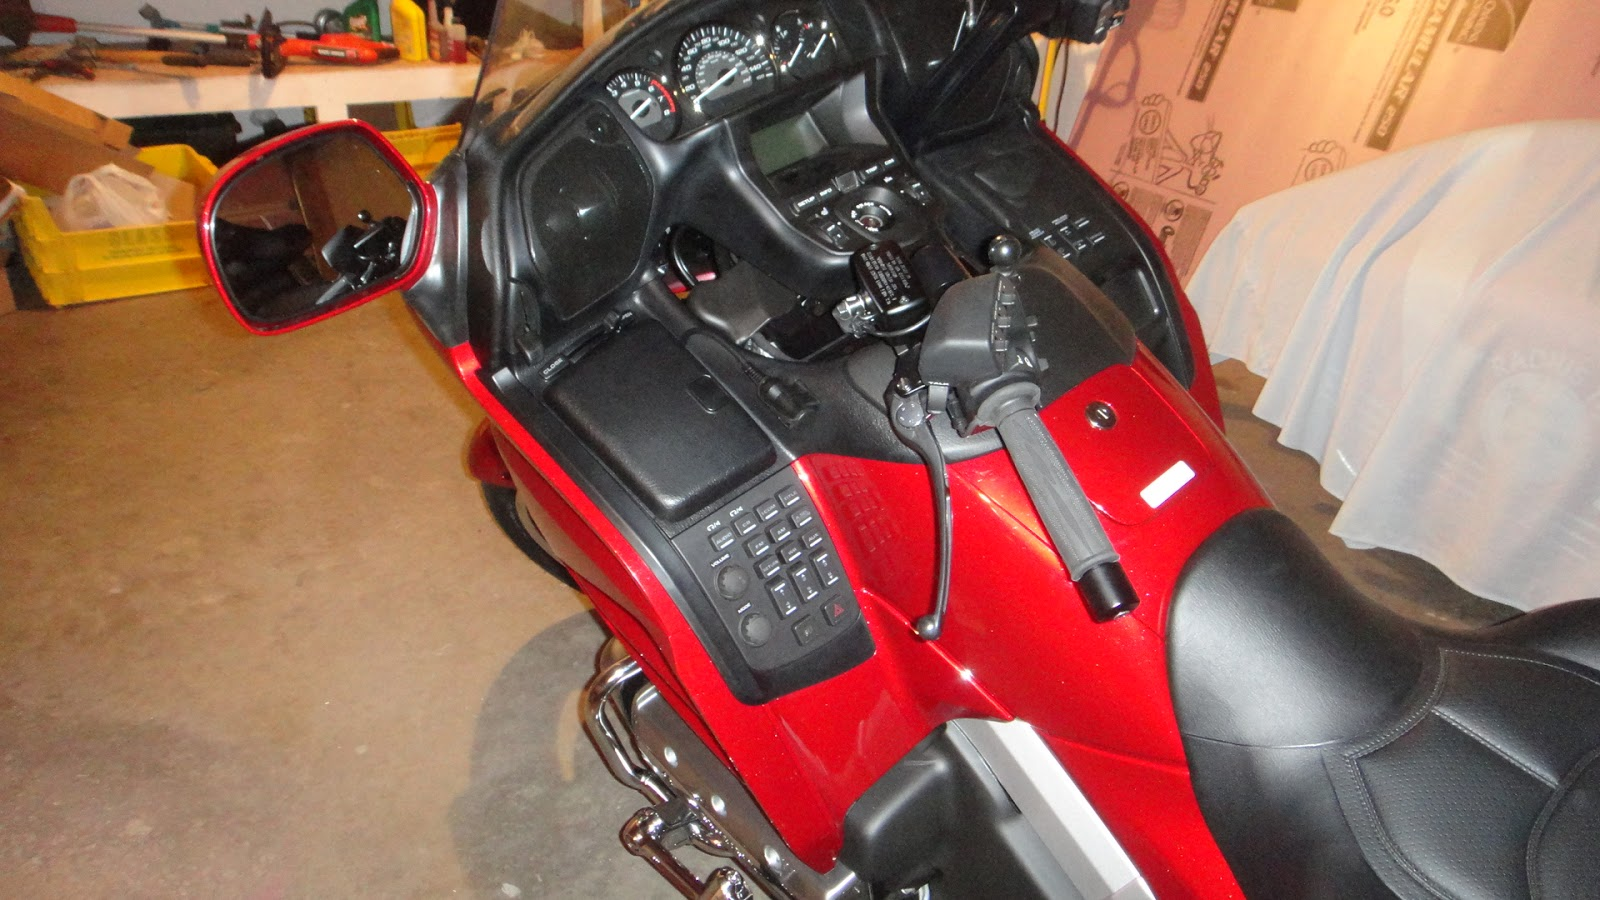 hight resolution of the first order of business for the bike was to figure out where to connect up power to the gps in the photo above you can see a panel with a lot